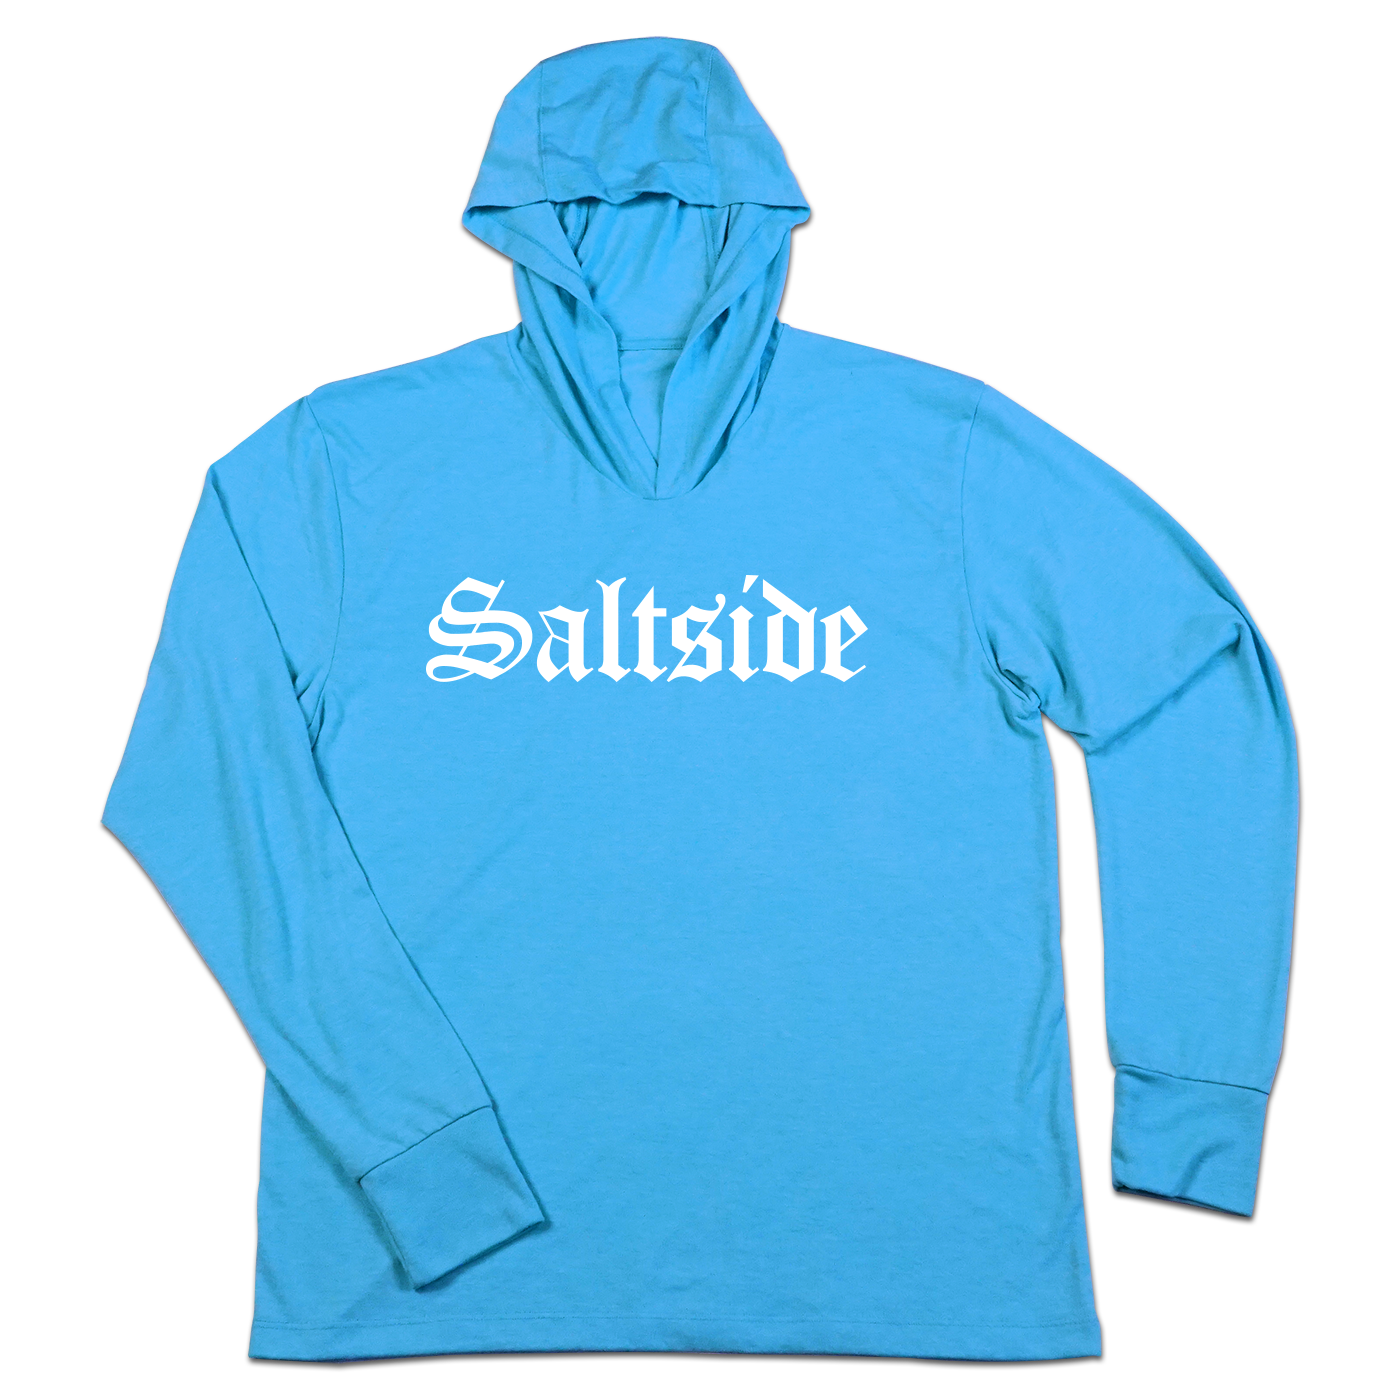 #SALTSIDE TriBlend Hoodie Shirt - White - Hat Mount for GoPro